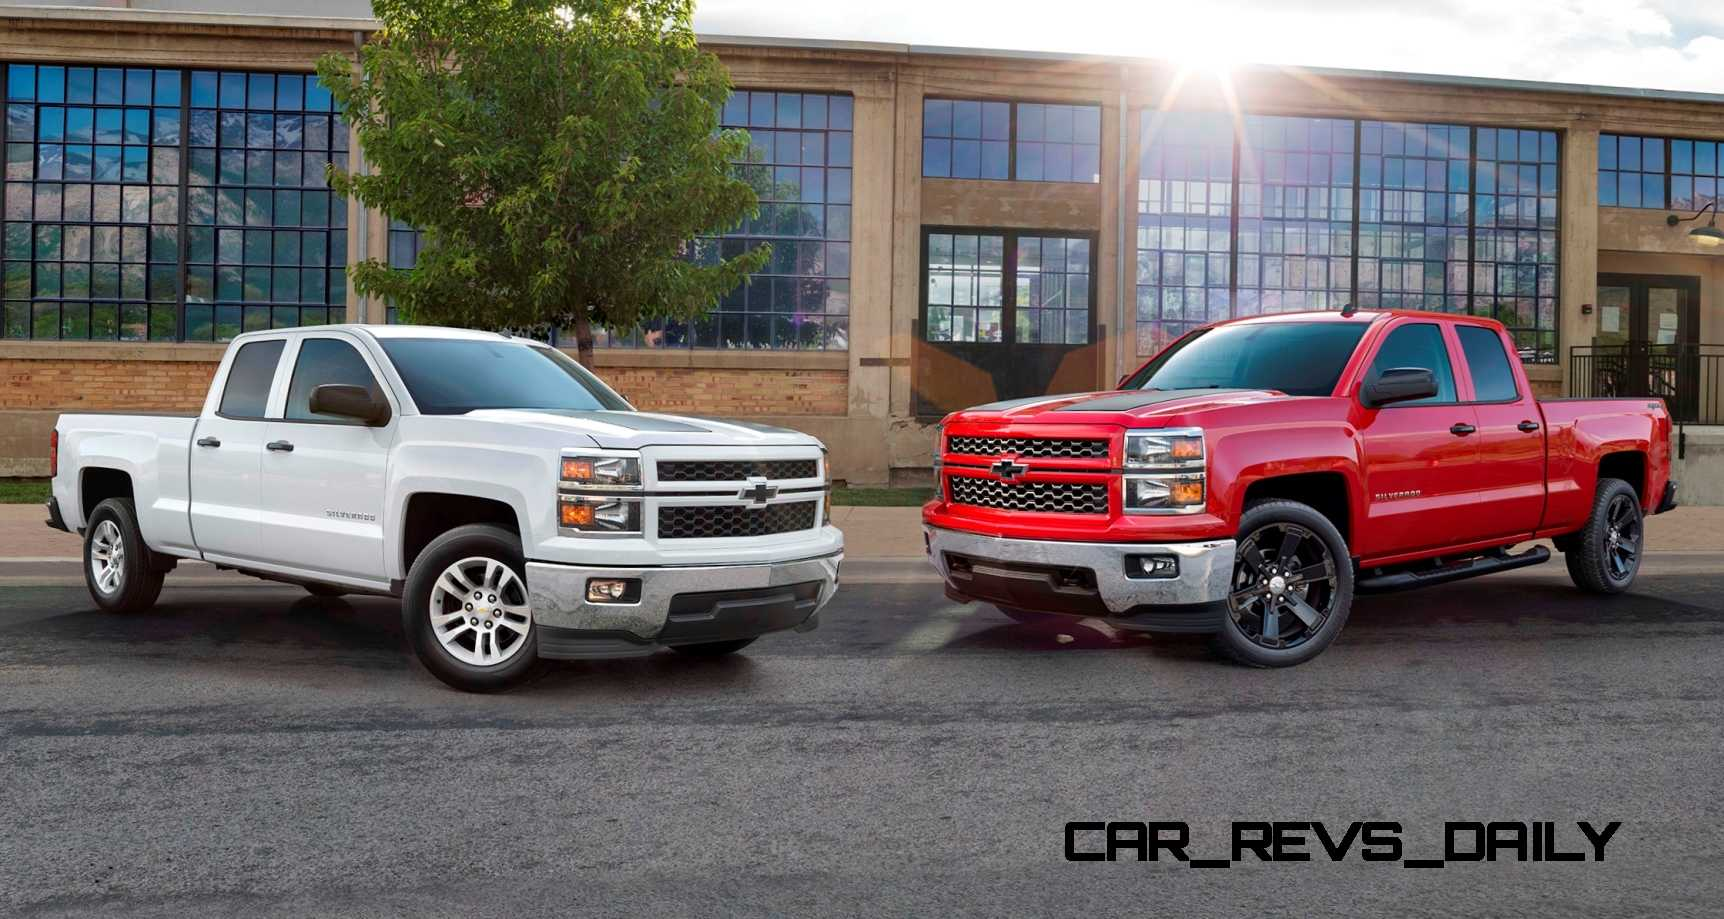 2015 Chevy Silverado Rally Edition Specs >> Texas Edition 2015 Silverado Max Trailering Package | Autos Post